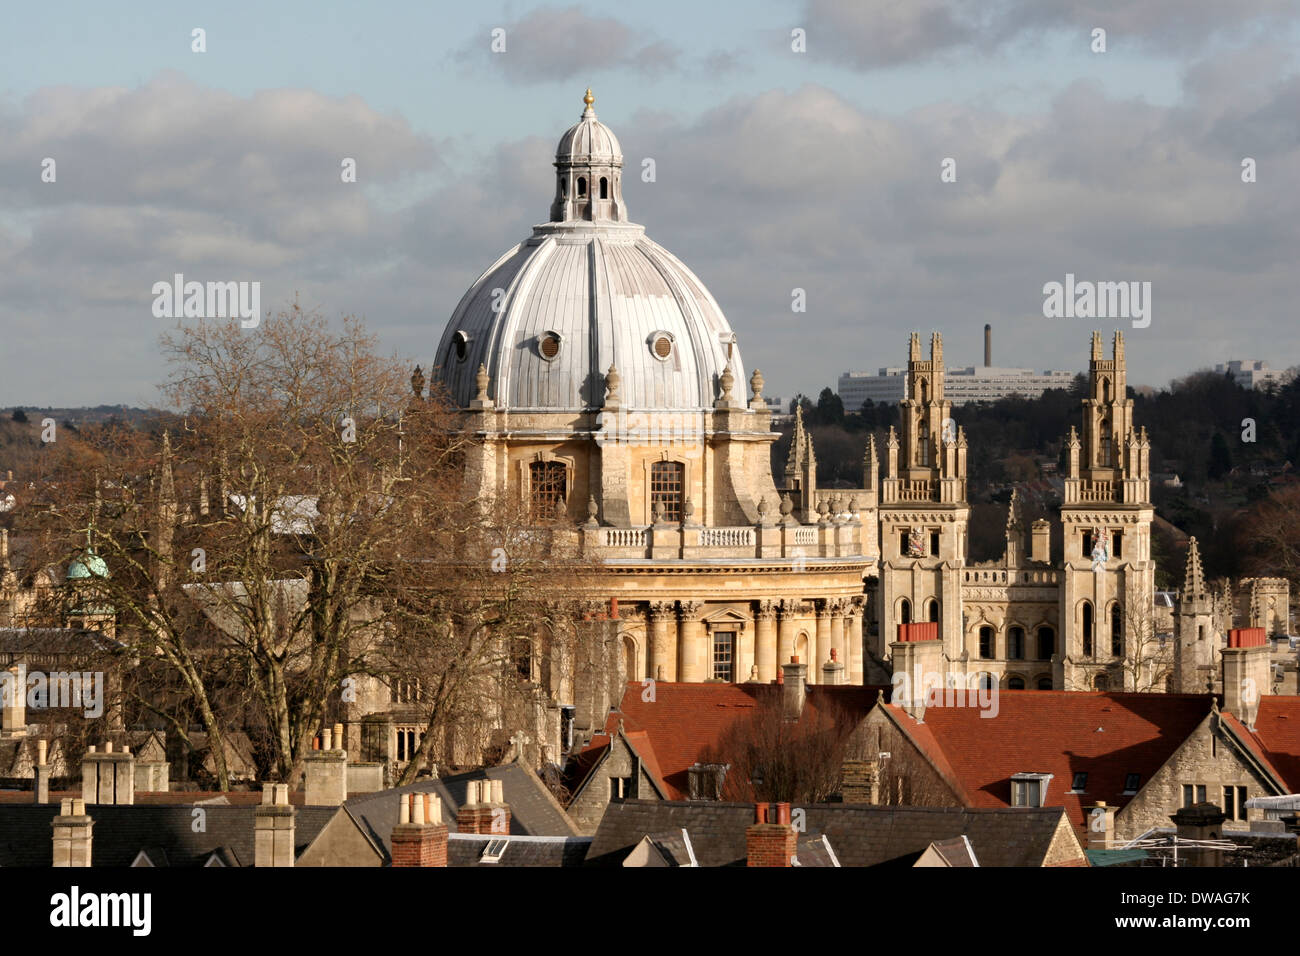 The View Of The Radcliffe Camera From Carfax Tower In Oxford Stock